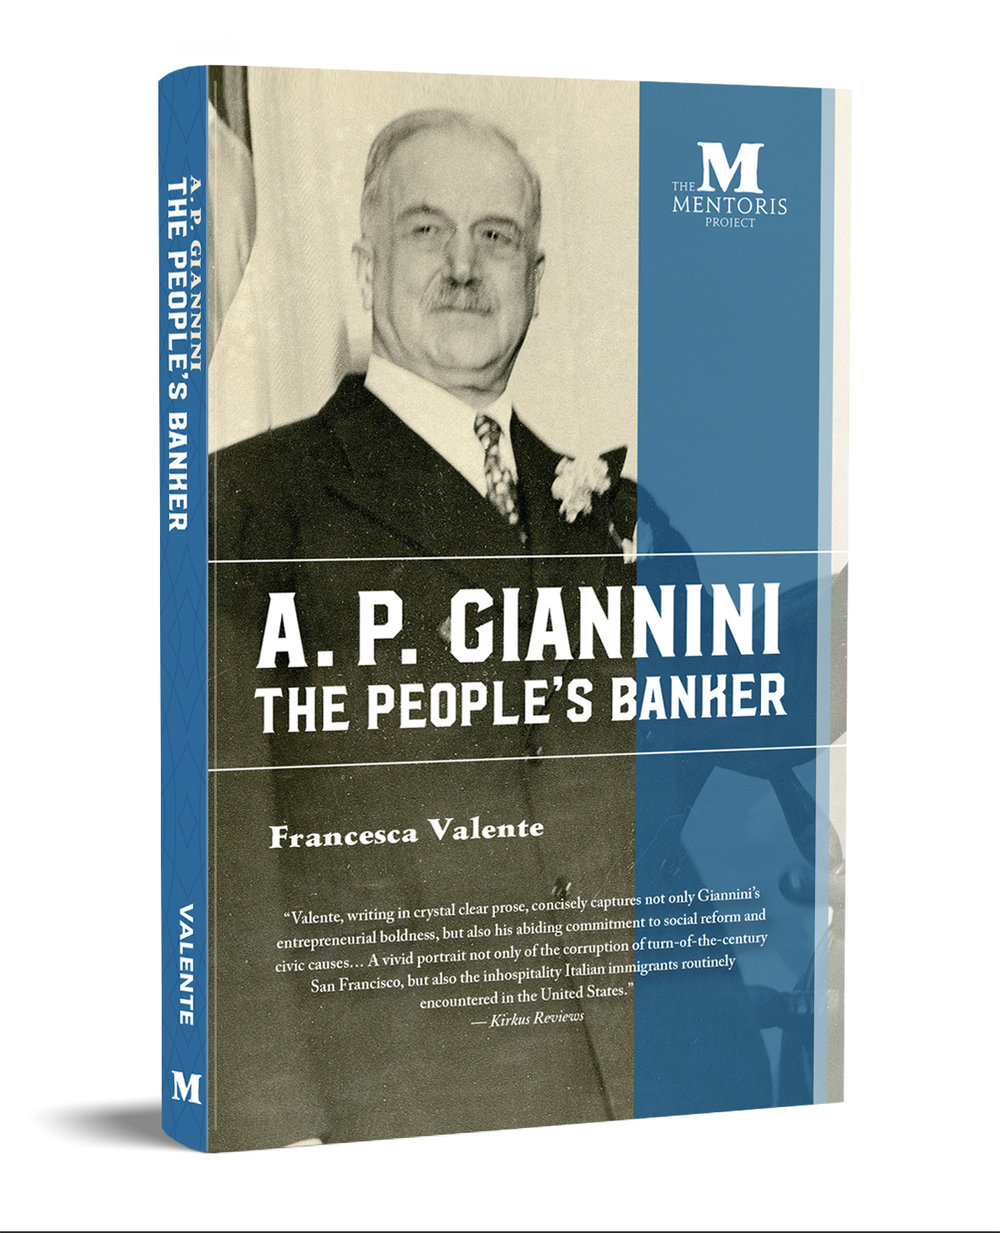 """""""Valente, writing in  crystal clear prose, concisely captures not only Giannini's entrepreneurial boldness, but also his abiding commitment to social reform and civic causes…A vivid portrait not only of the corruption of turn-of-the-century San Francisco, but also the in hospitality Italian immigrants routinely encountered in the United States."""" — Kirkus Reviews"""